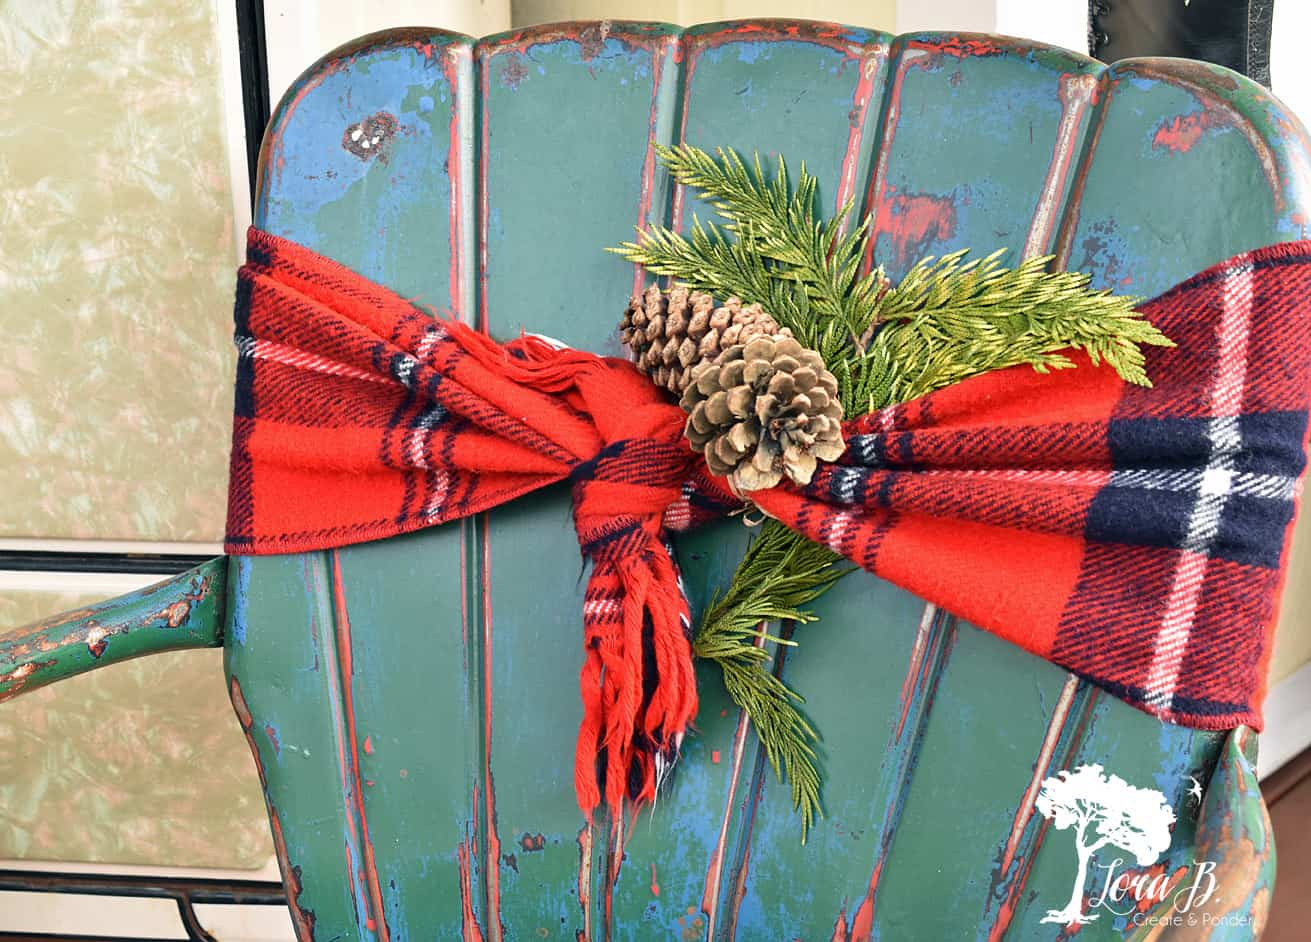 Vintage metal chair, decorated for the holidays